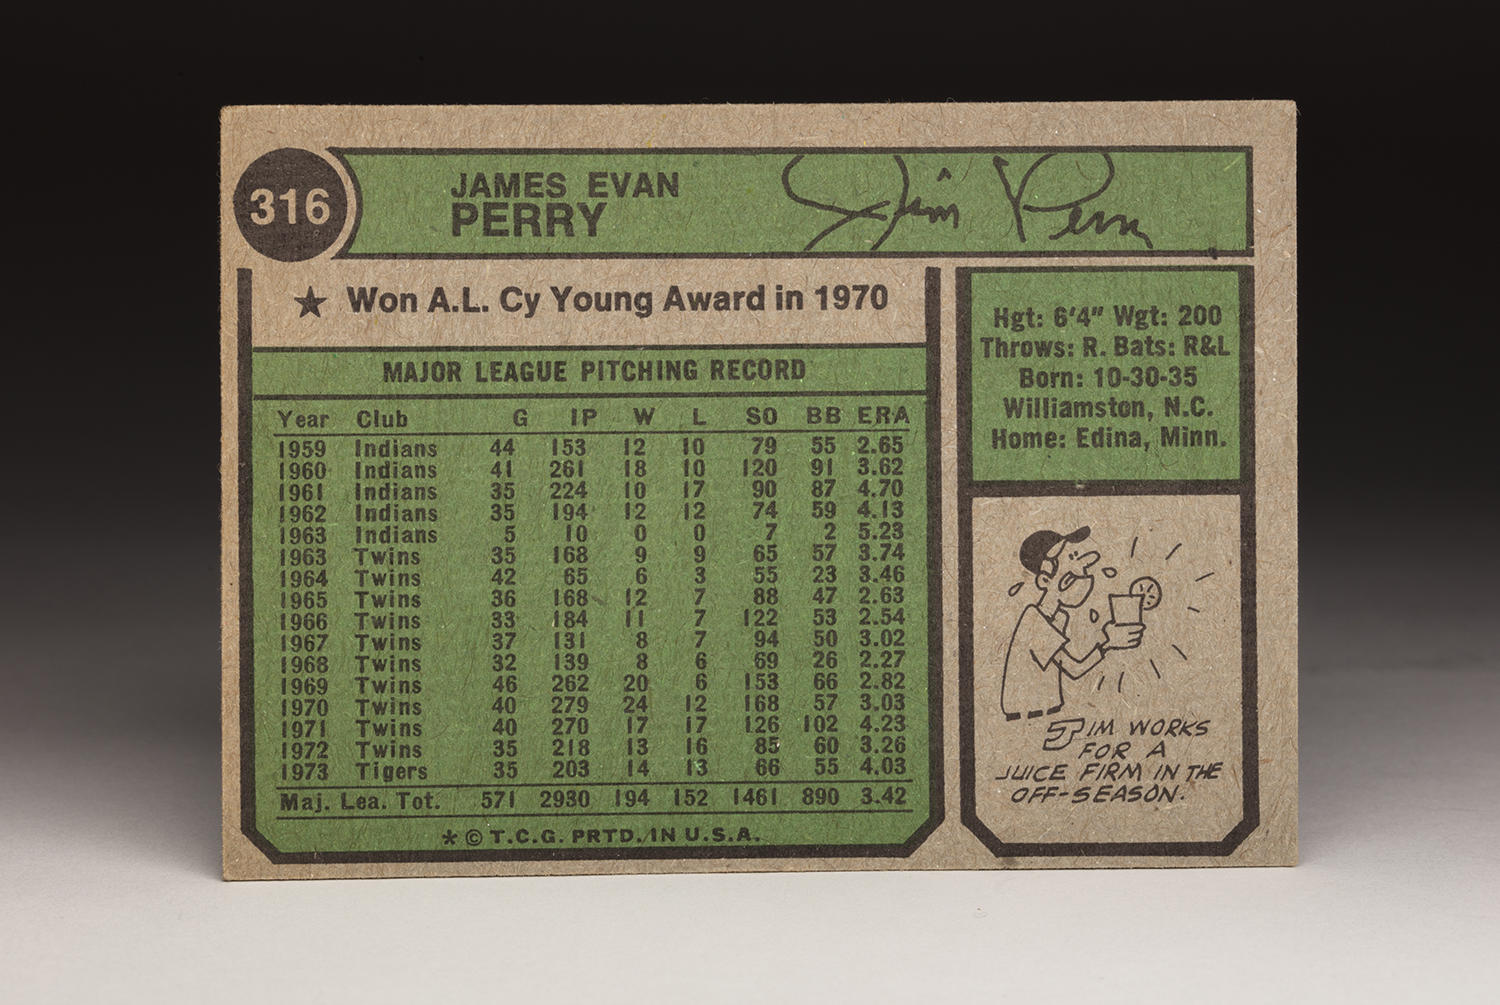 The reverse side of Jim Perry's 1974 Topps card. (Milo Stewart Jr. / National Baseball Hall of Fame)